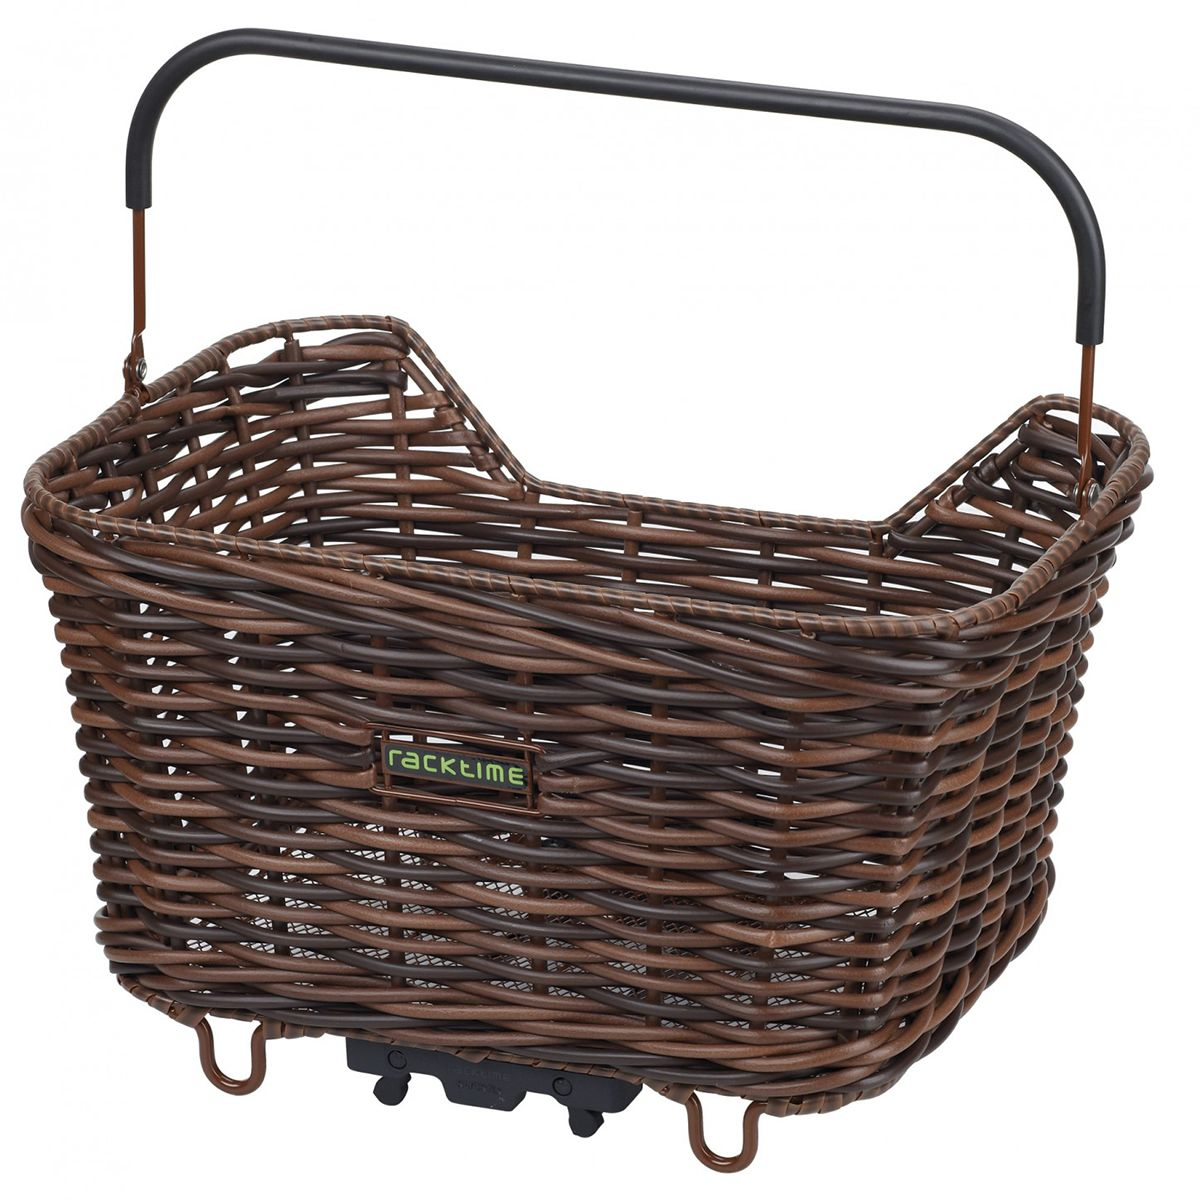 Bask-it Willow front bicycle basket